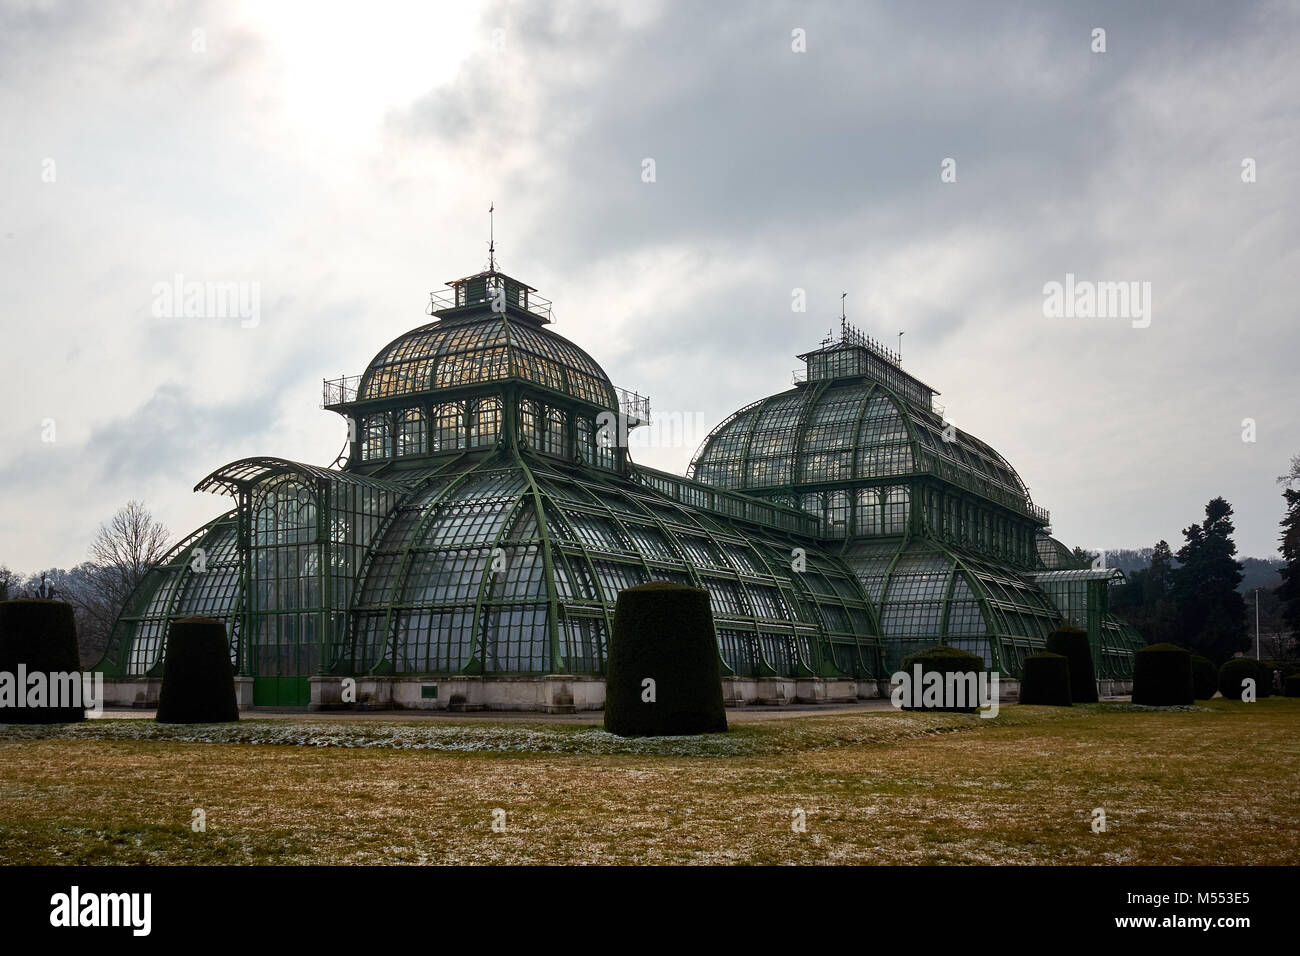 Vienna, Austria - February 18th 2018: The Palmenhaus Schönbrunn / Schönbrunn palm house in the grounds - Stock Image